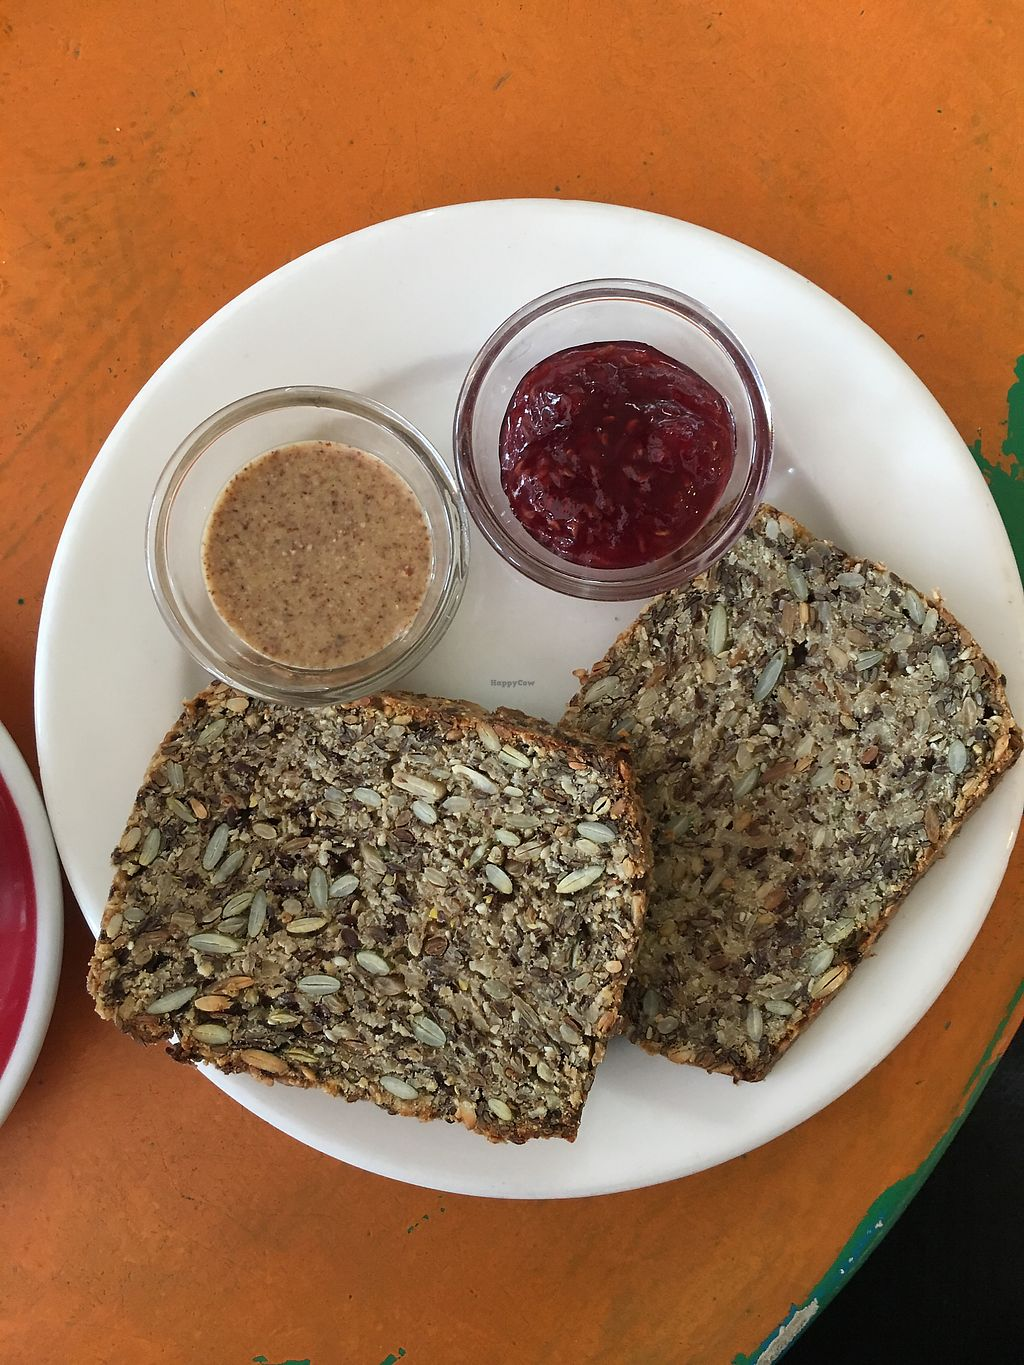 """Photo of Queen Sally's Diamond Deli  by <a href=""""/members/profile/danielaj"""">danielaj</a> <br/>Toasted seeded bread w almond butter and jam <br/> April 30, 2018  - <a href='/contact/abuse/image/28109/392938'>Report</a>"""